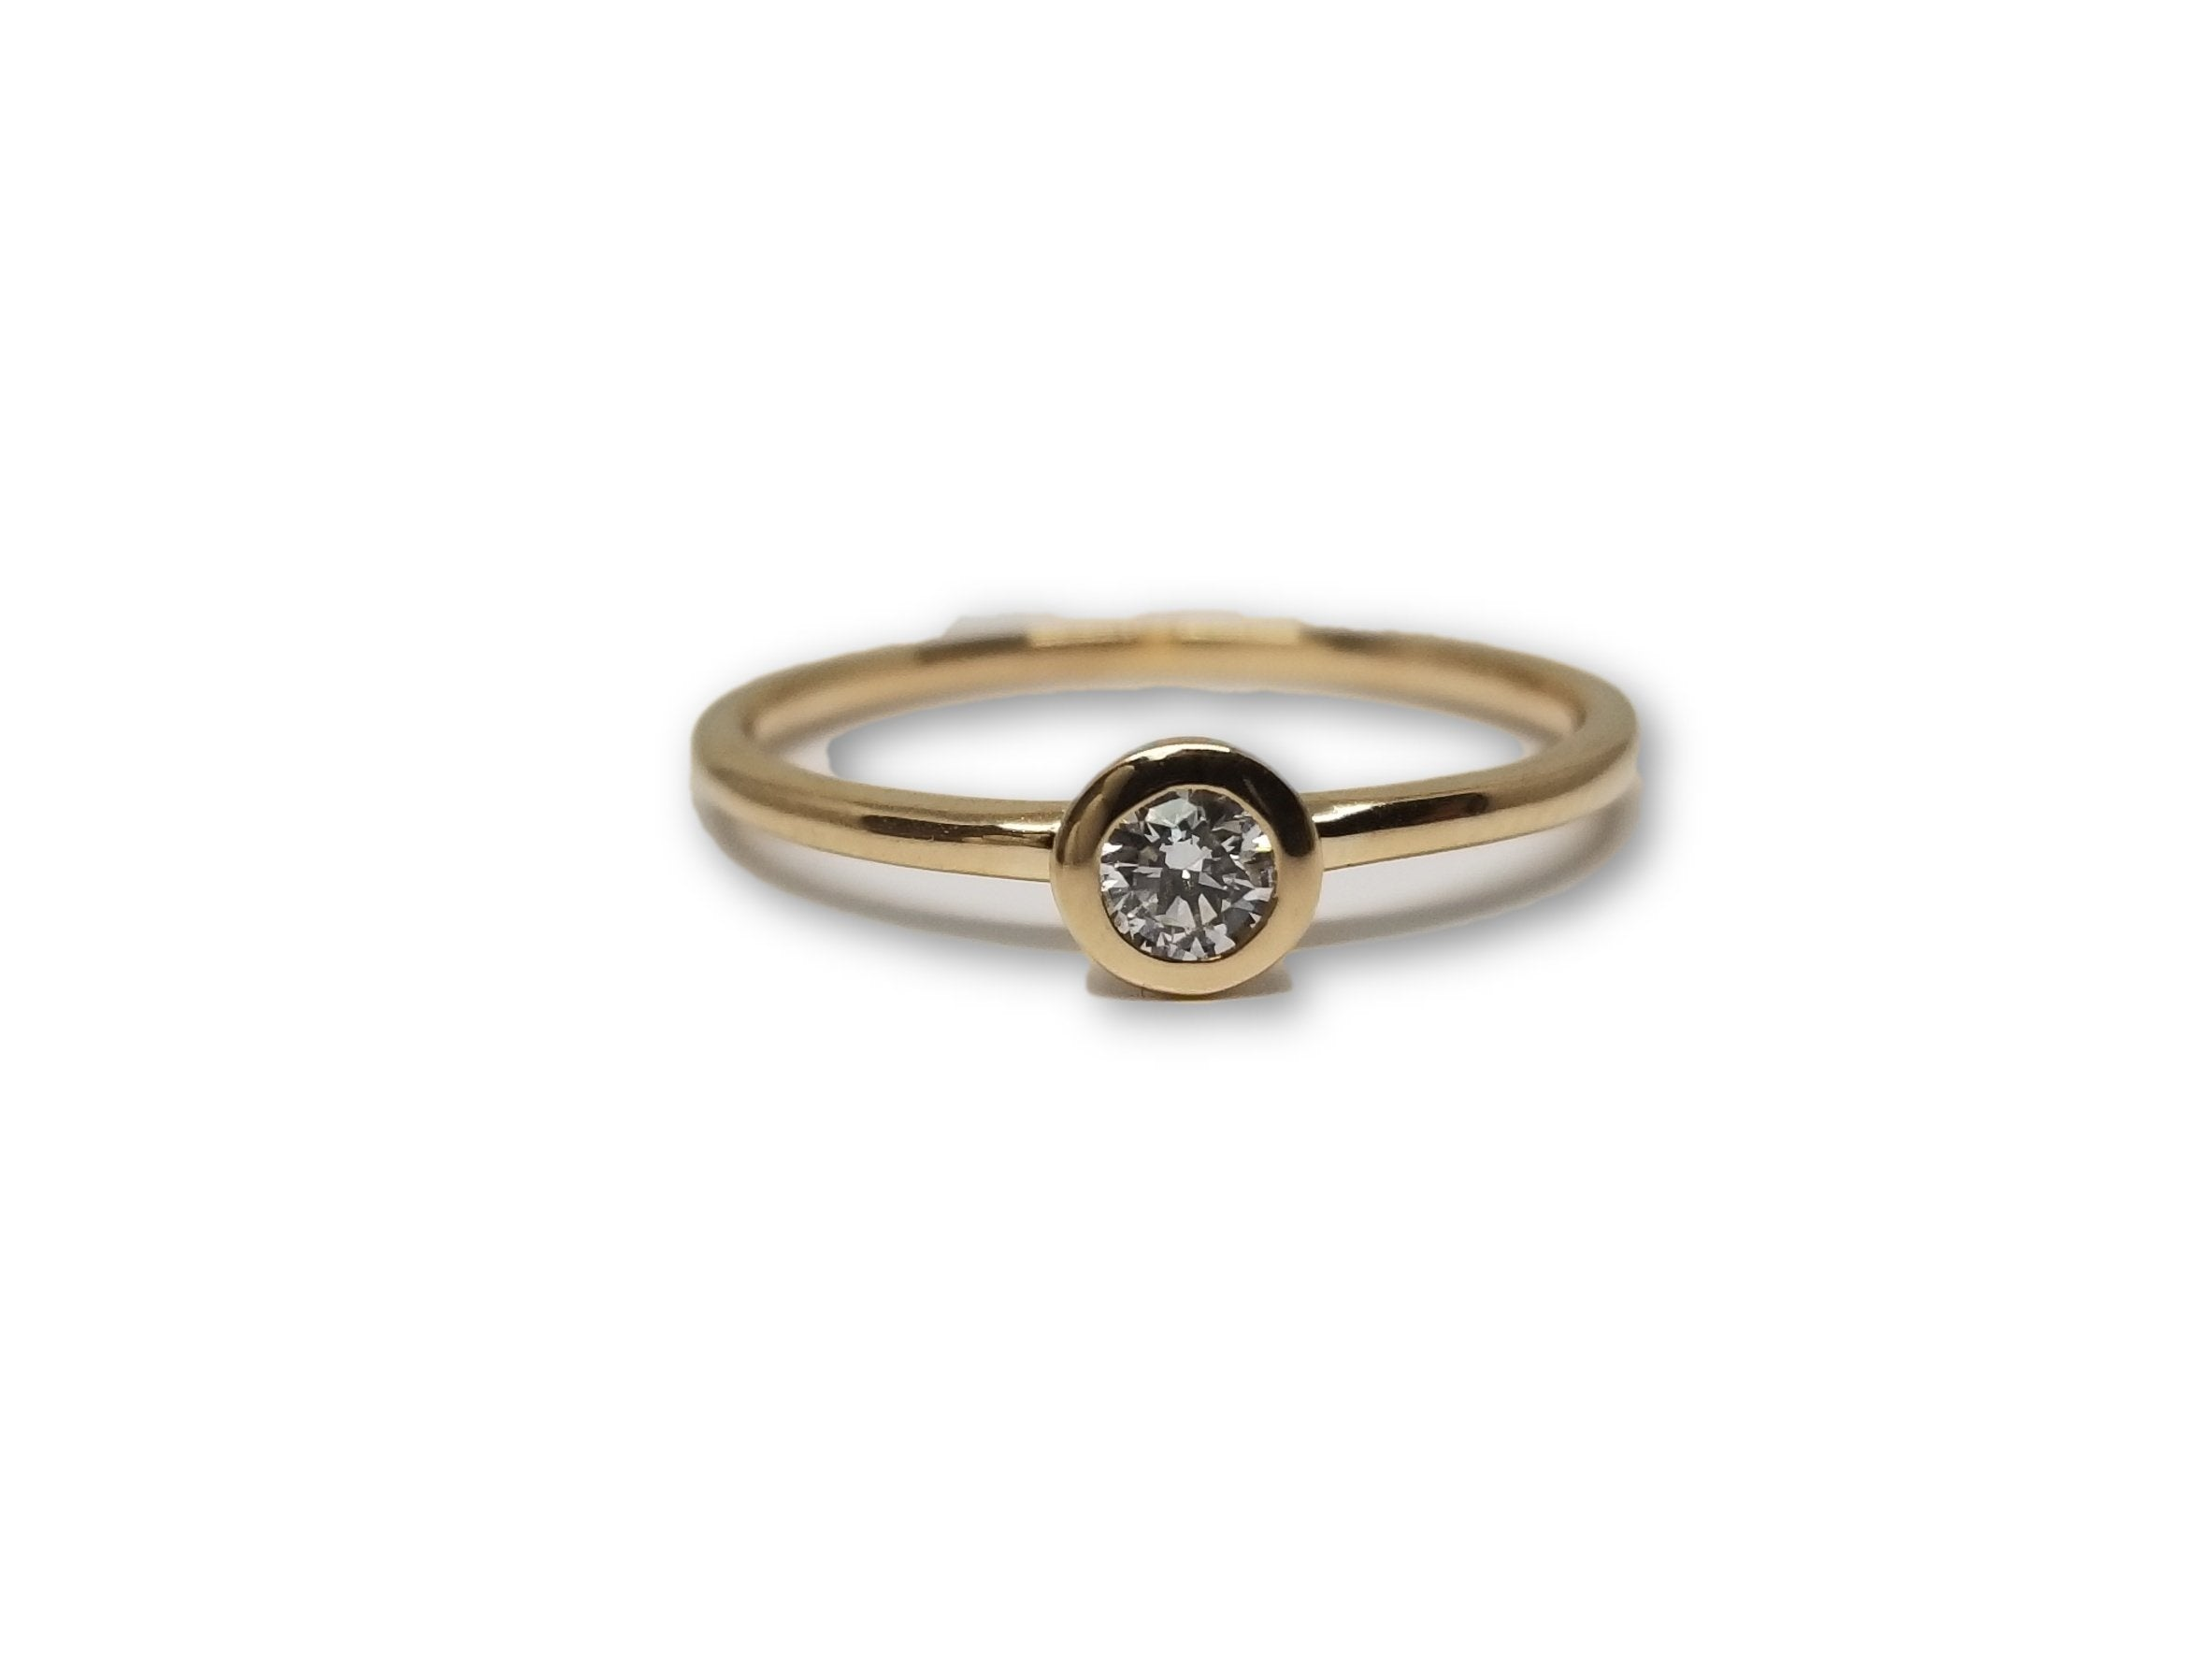 Bague Fashion 14kt  0.13ct de diamants - orquebec